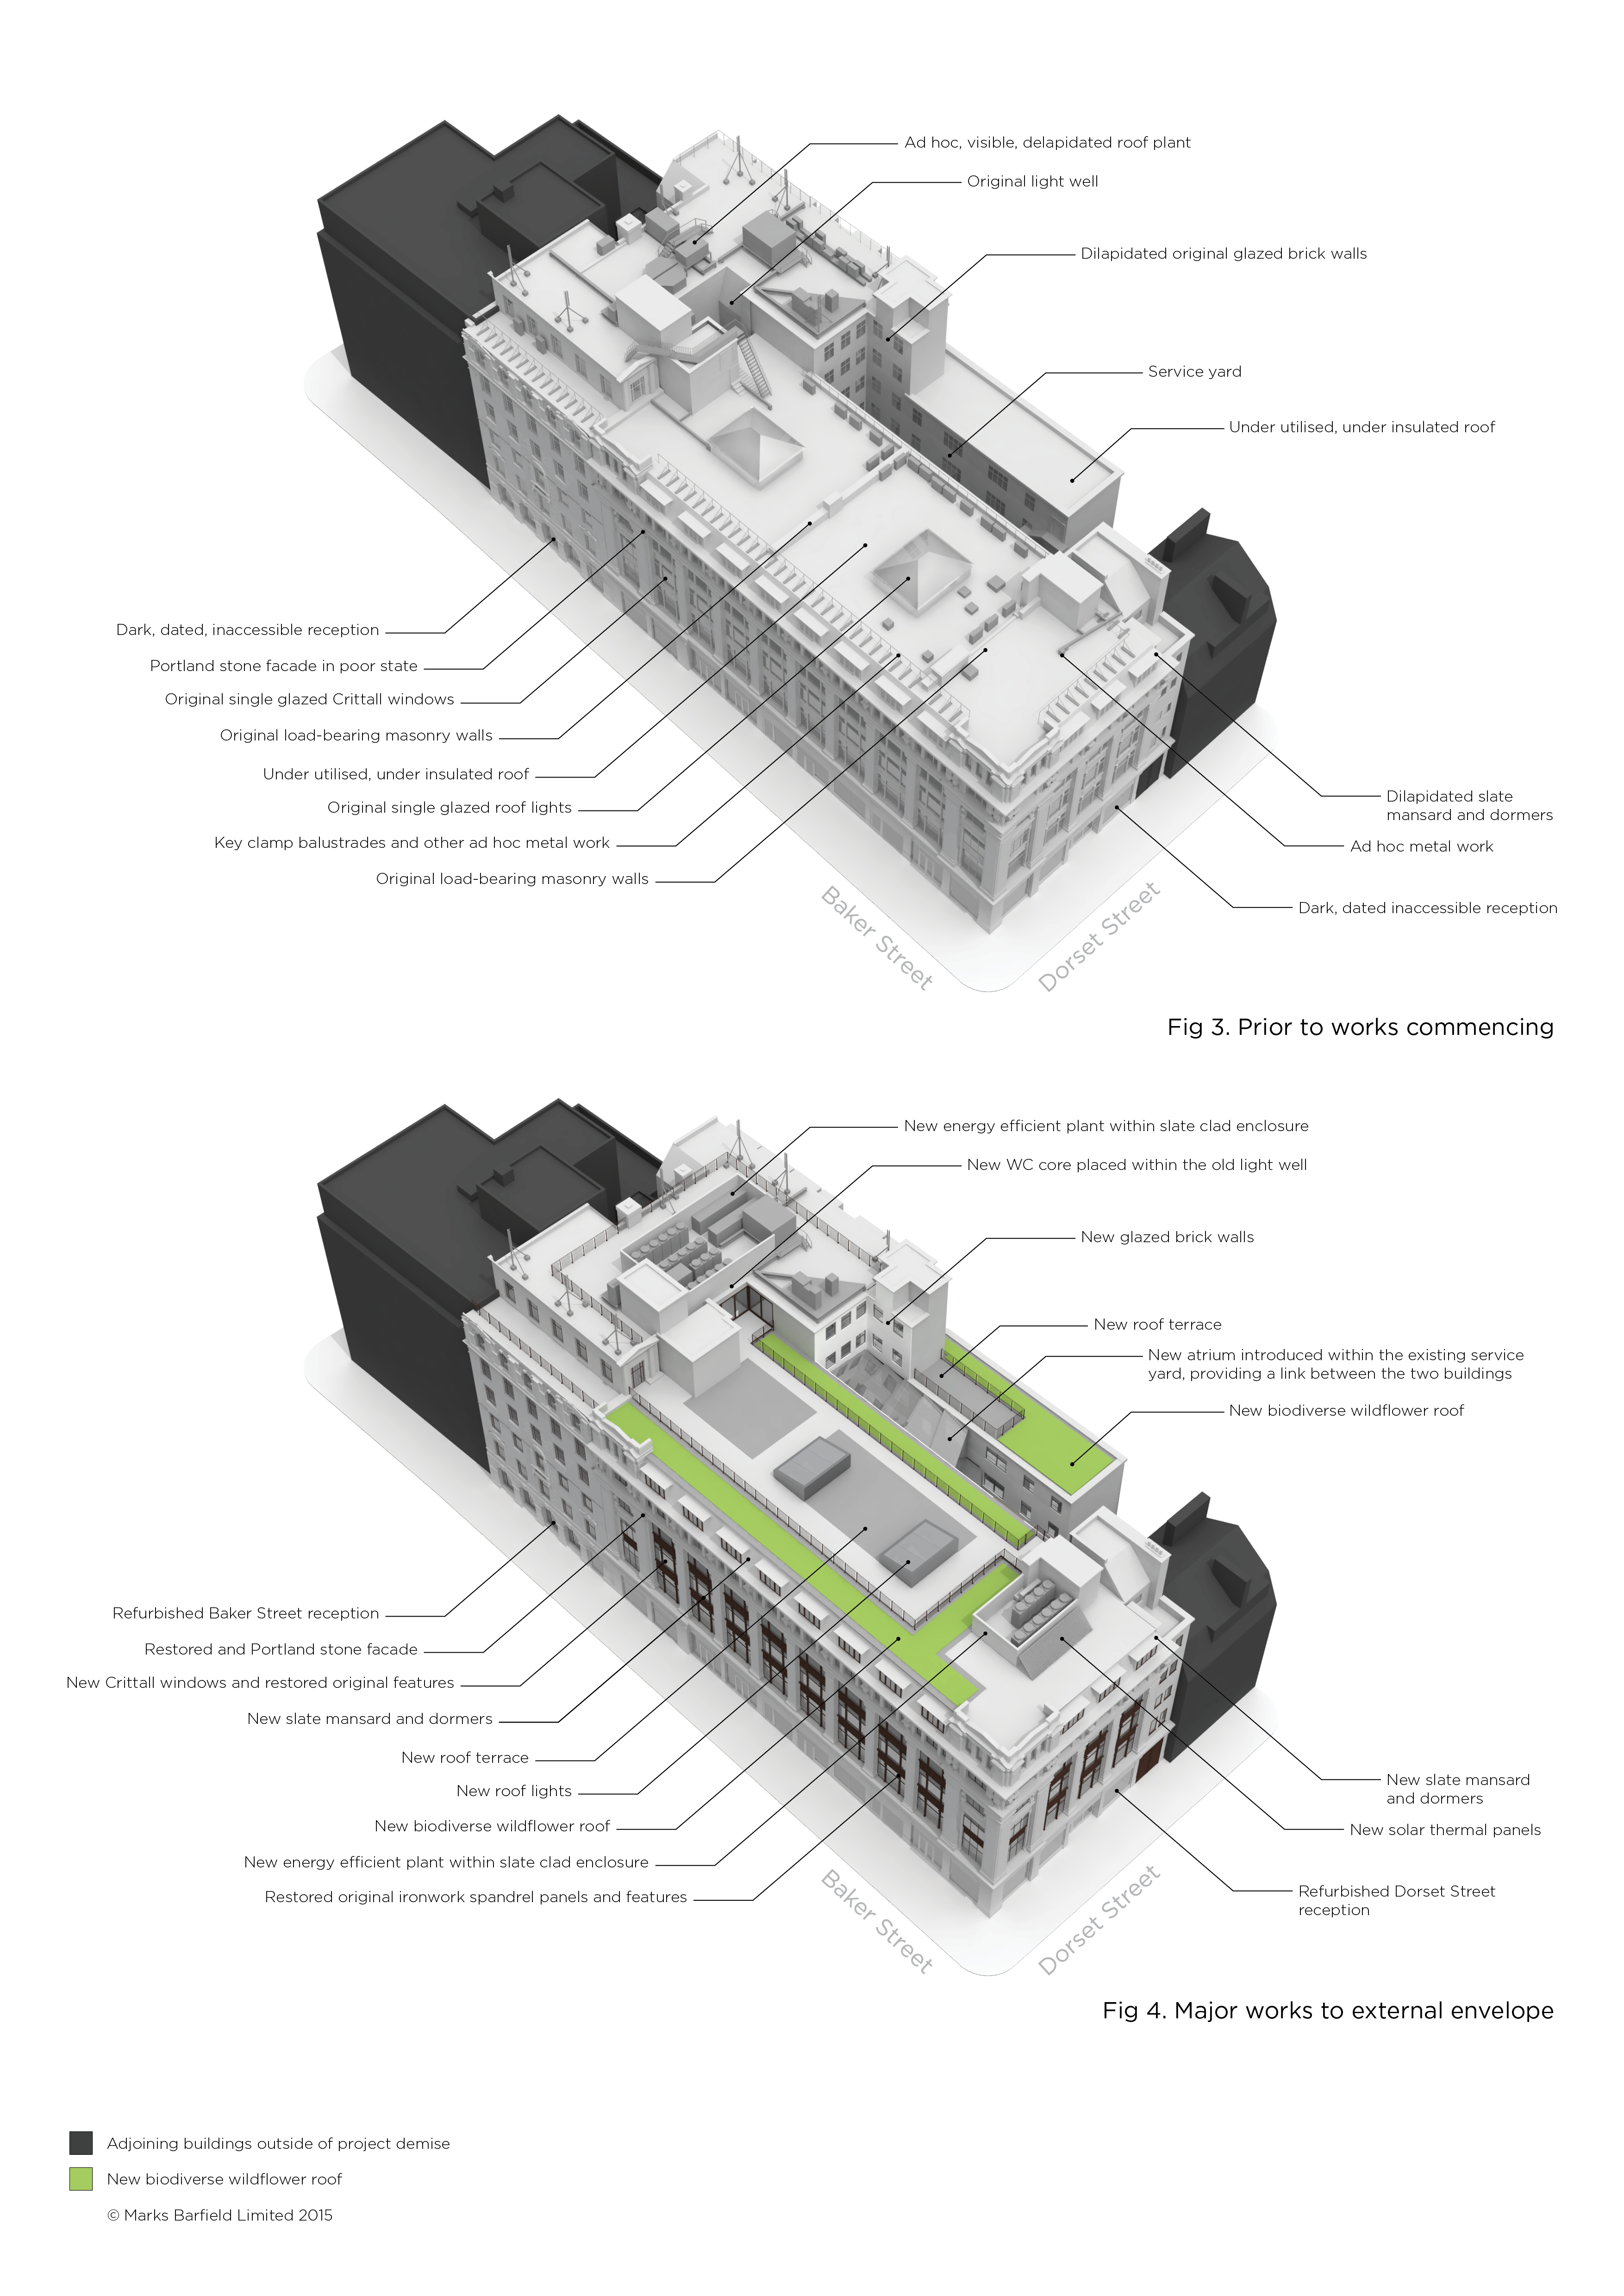 project diagram - 82 Baker Street by Marks Barfield Architects